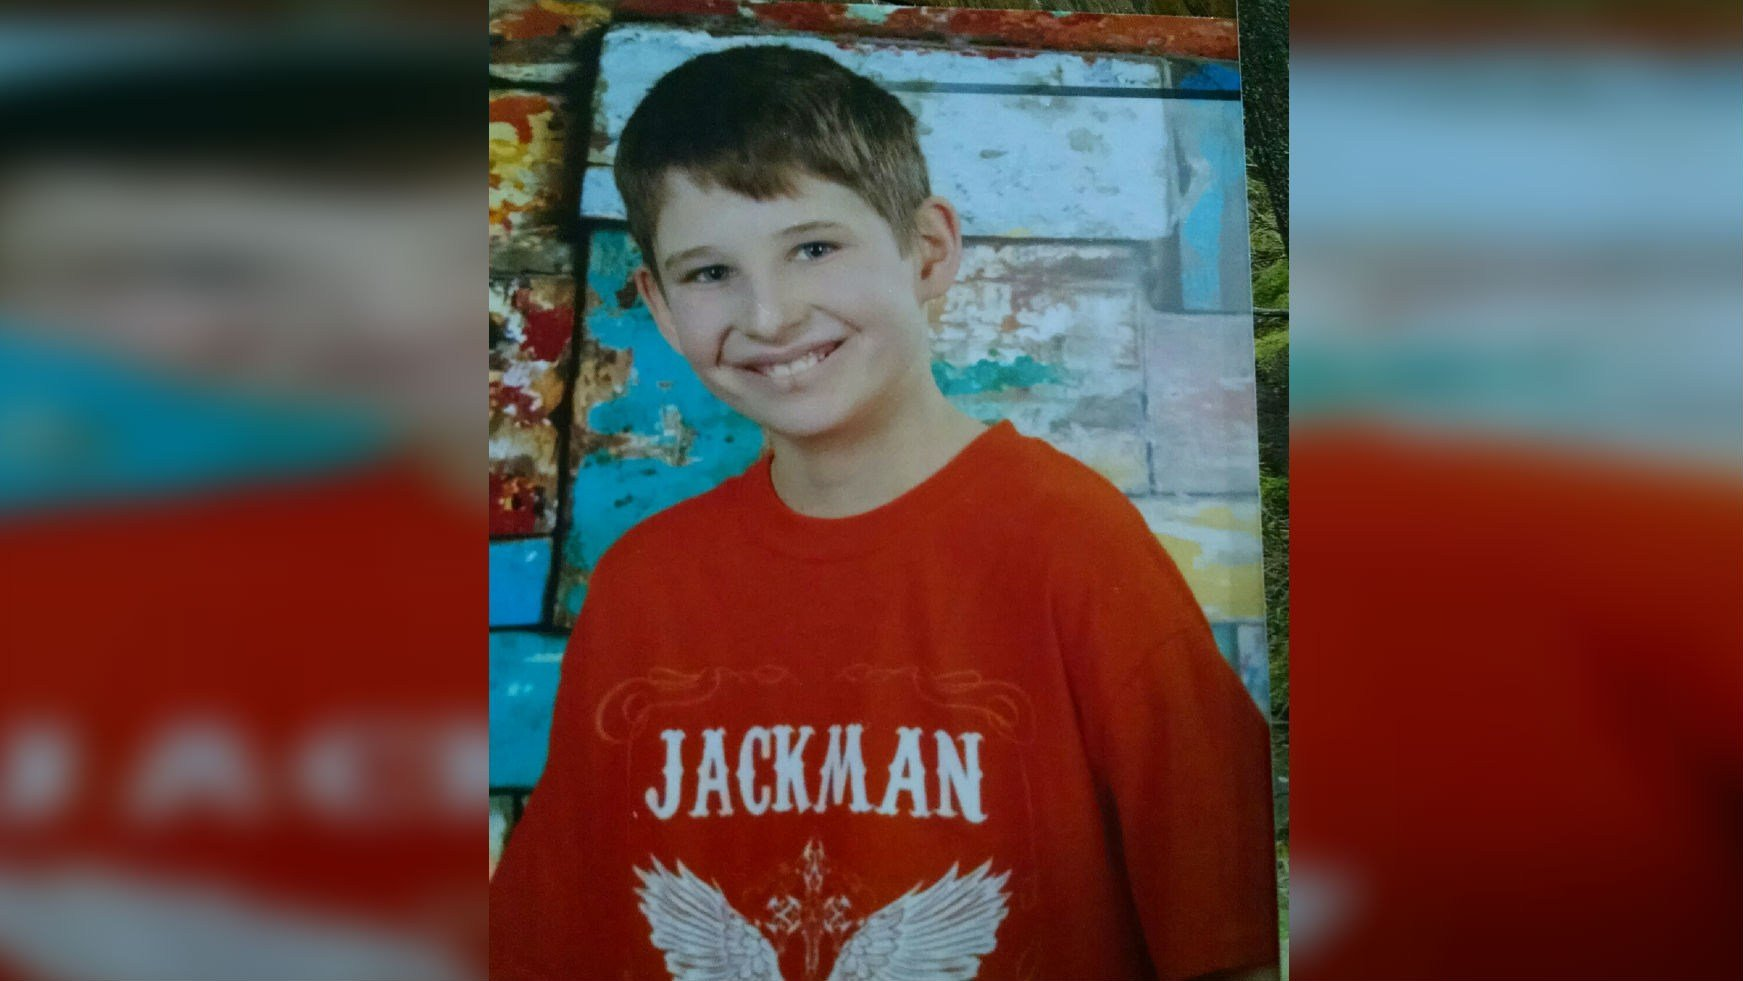 Spokane Valley Deputies ask for public's help finding missing child